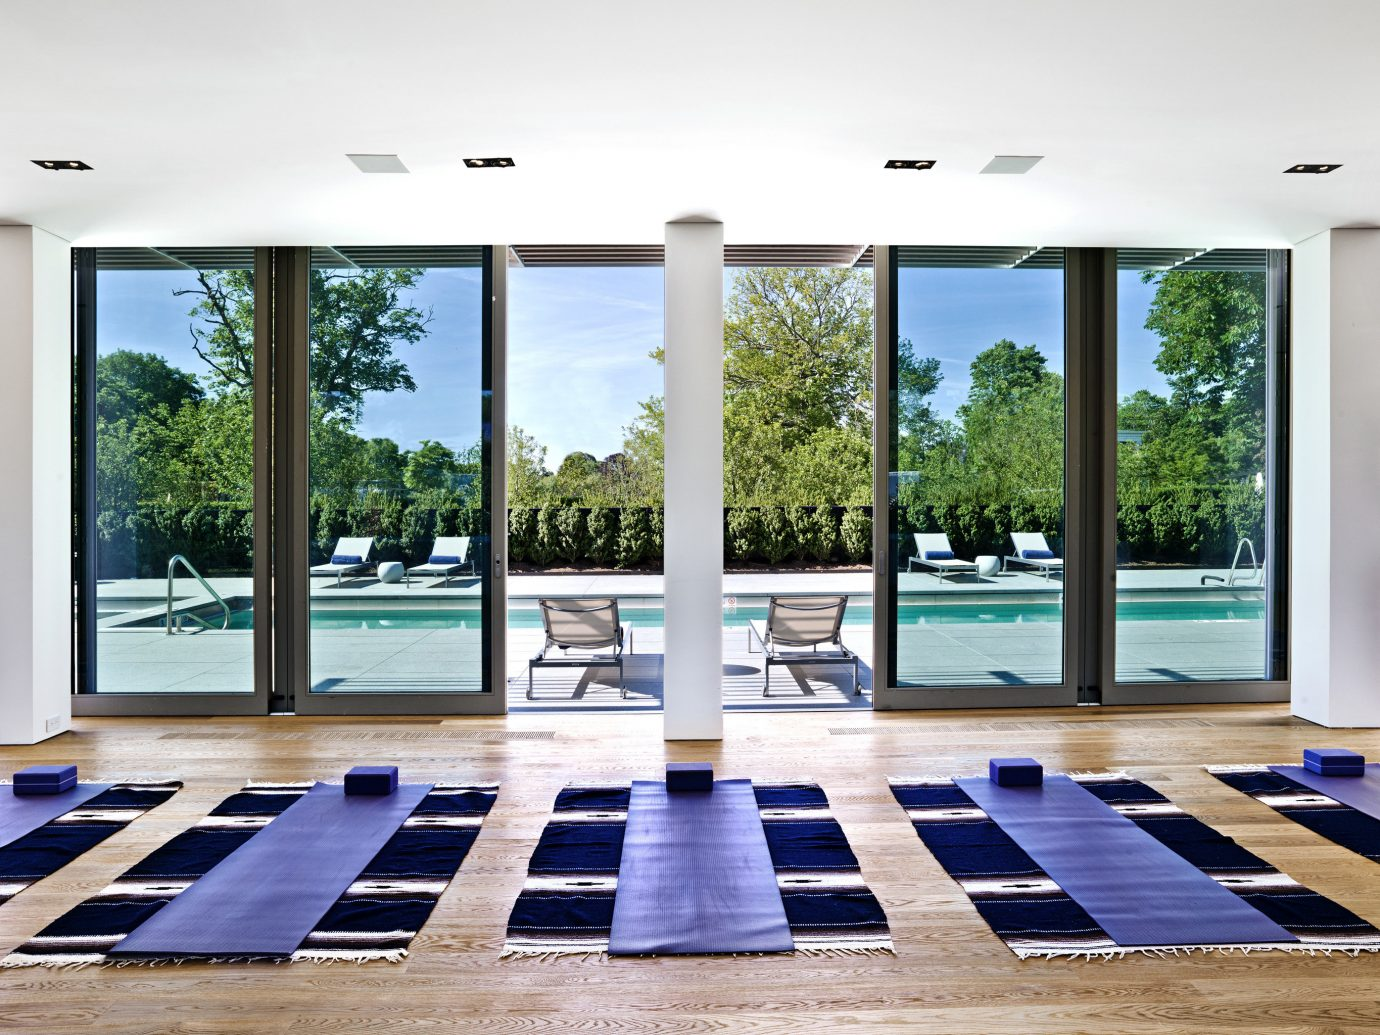 Topping Rose House. Boutique Luxury Modern Pool Sport Wellness building property outdoor floor window estate home interior design condominium living room daylighting flooring wood Design window covering glass furniture empty lined